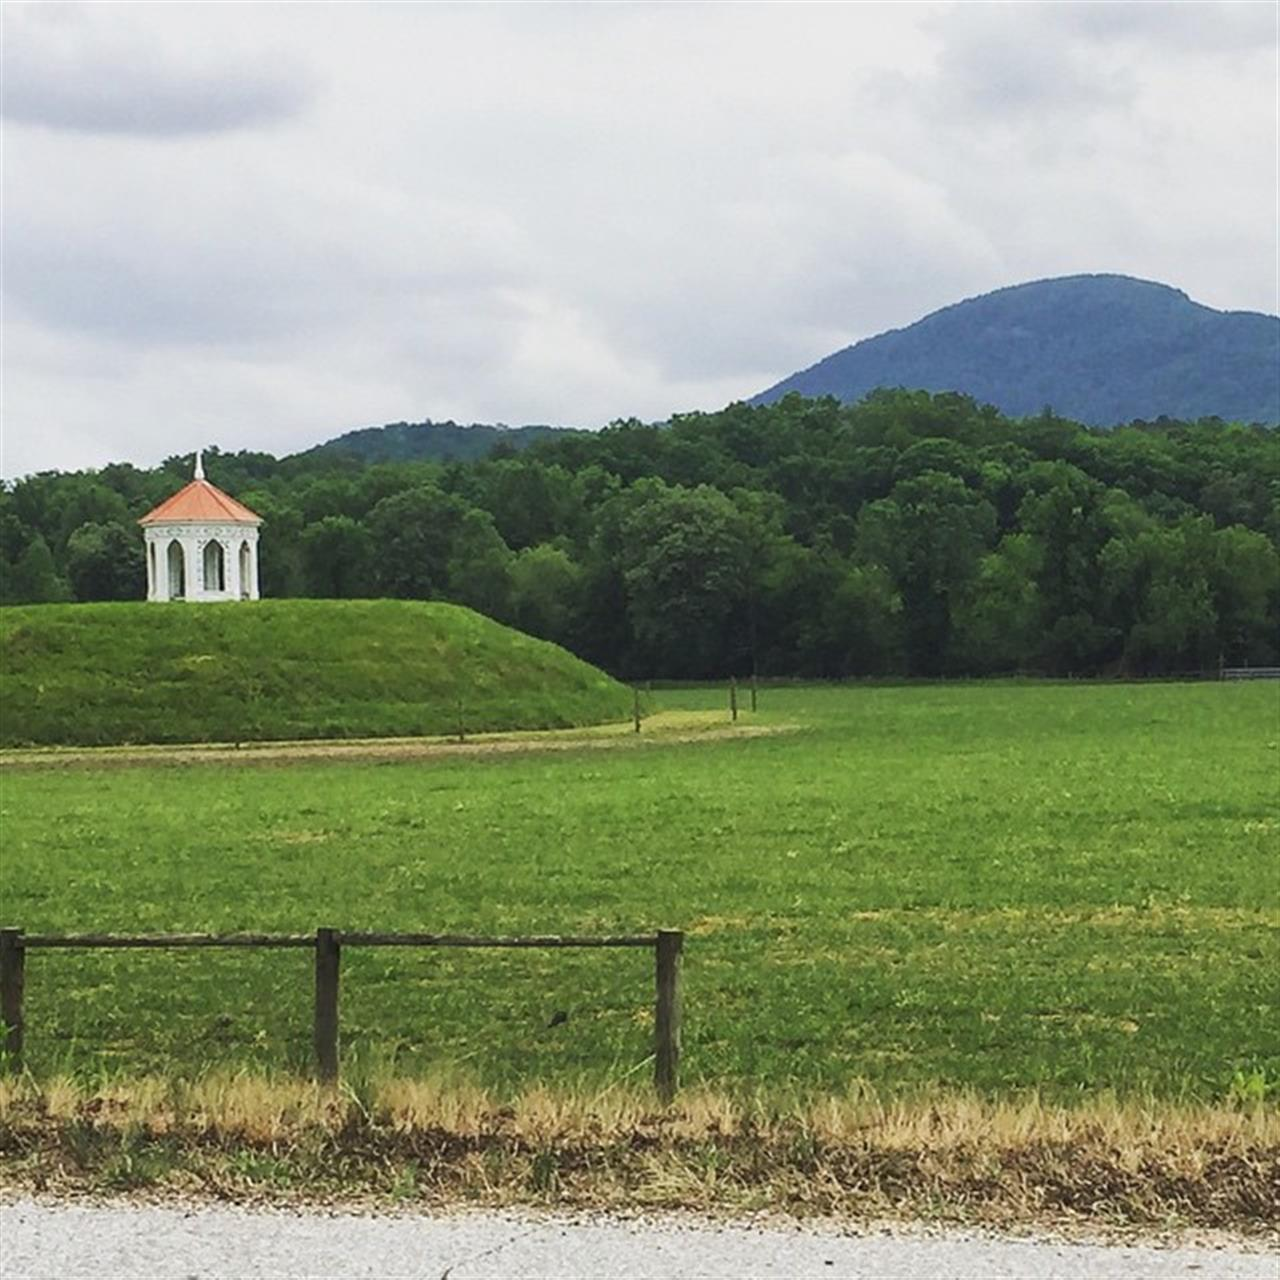 Nacoochee Indian Mound near Helen GA, one of Georgia's most photographed sites.